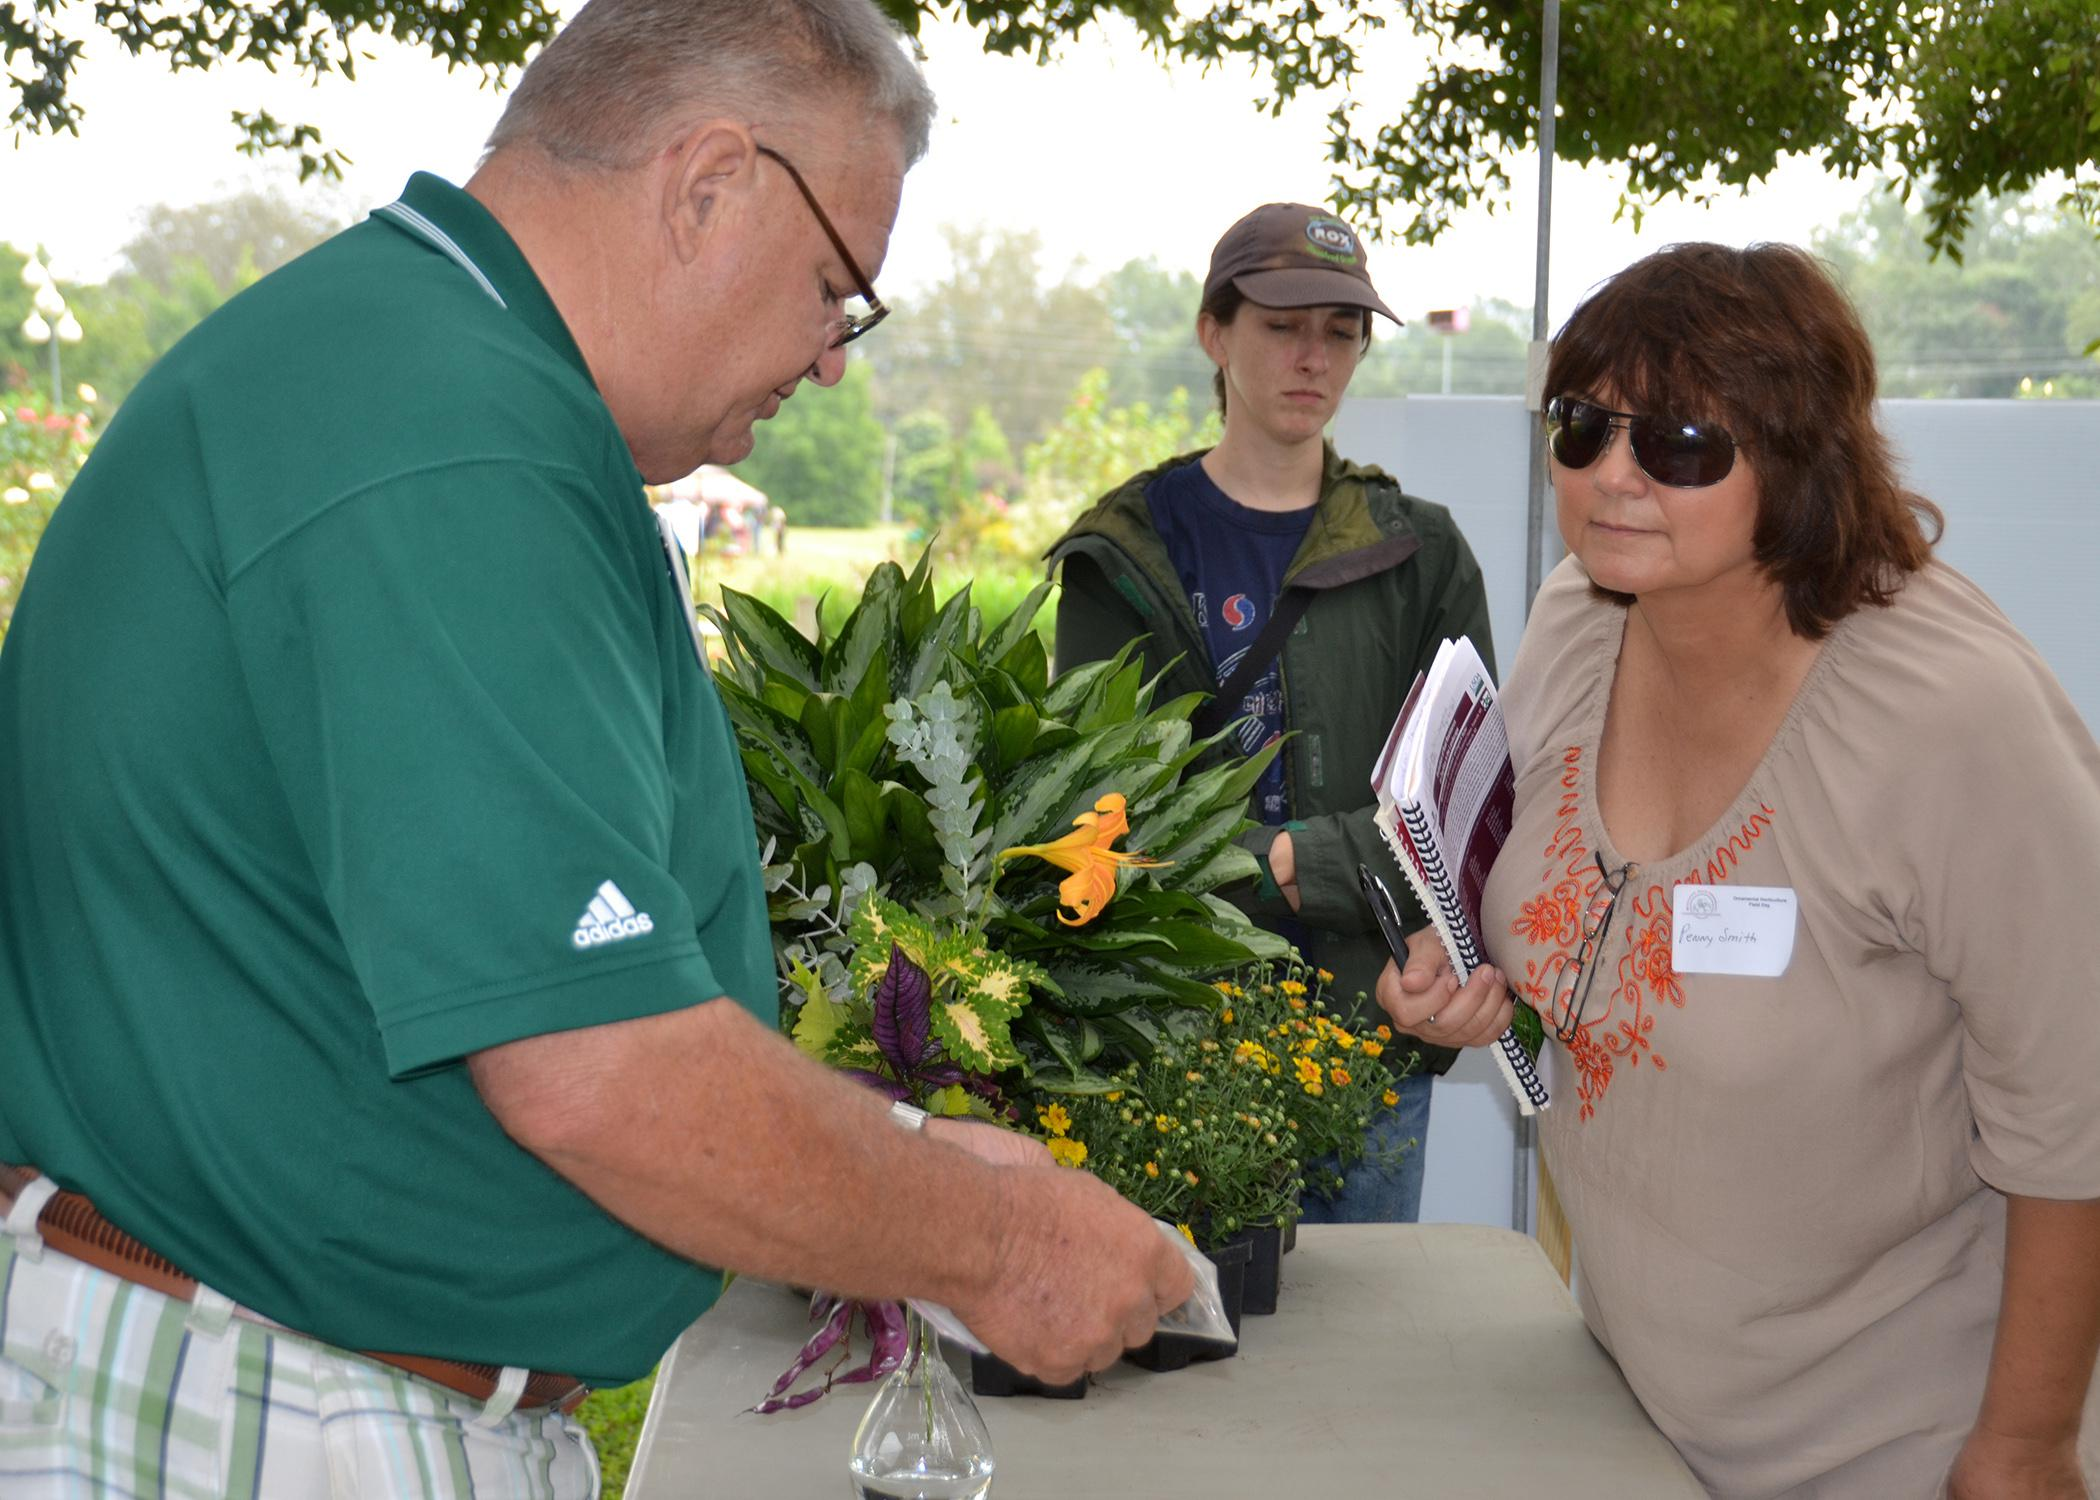 John Michael Anderson, a research associate with the Mississippi Agricultural and Forestry Experiment Station, explains propagating daylilies from seed to Penny Smith during the Ornamental Horticulture Field Day Oct. 10 at Mississippi State University's South Mississippi Branch Experiment Station in Poplarville. Leisure gardeners and horticulture industry professionals learned about the latest research findings, new plant varieties and helpful technologies. (Photo by MSU Ag Communications/Susan Collins-Smit